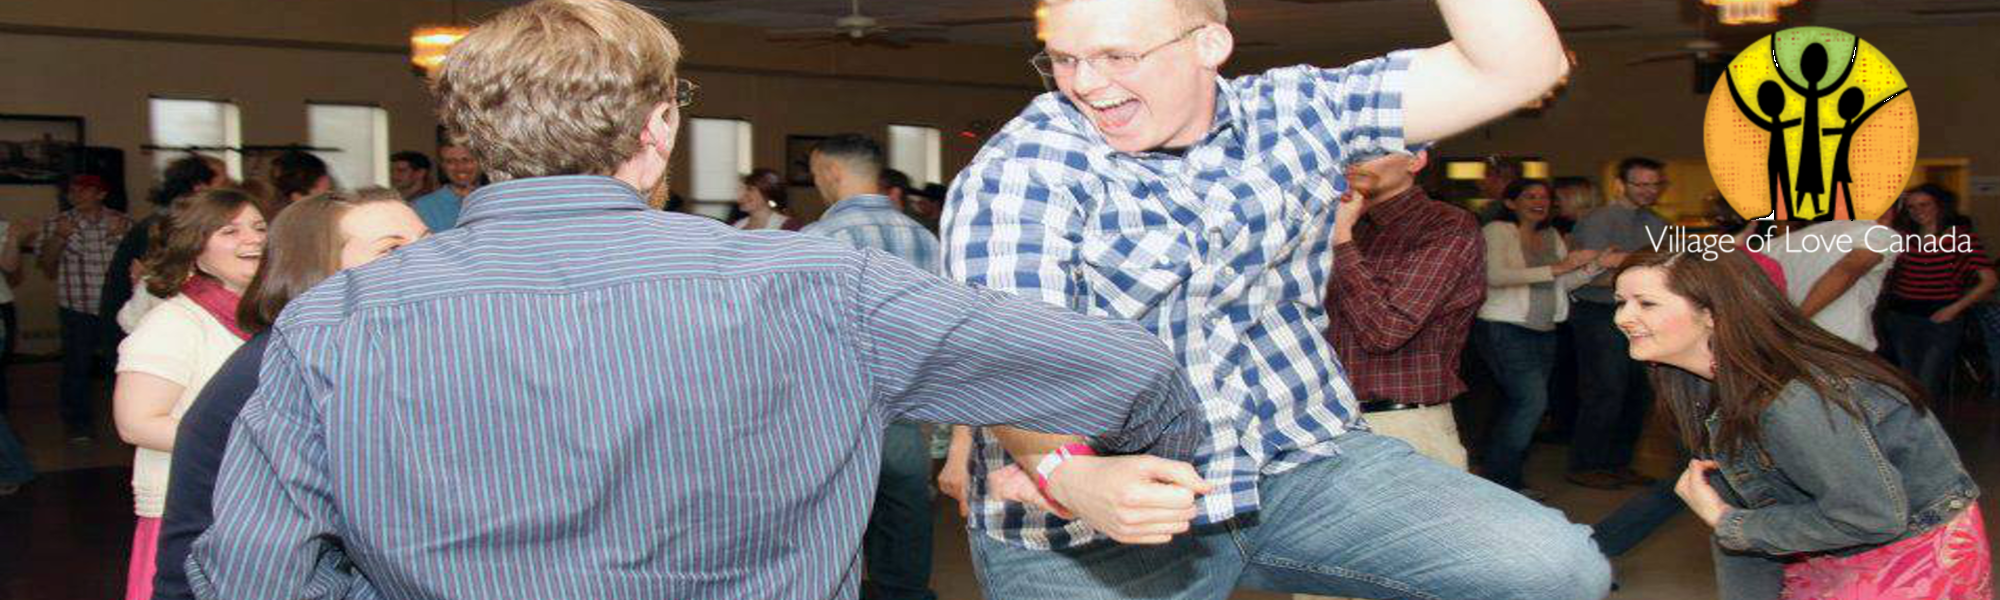 Square Dance for Square Meals